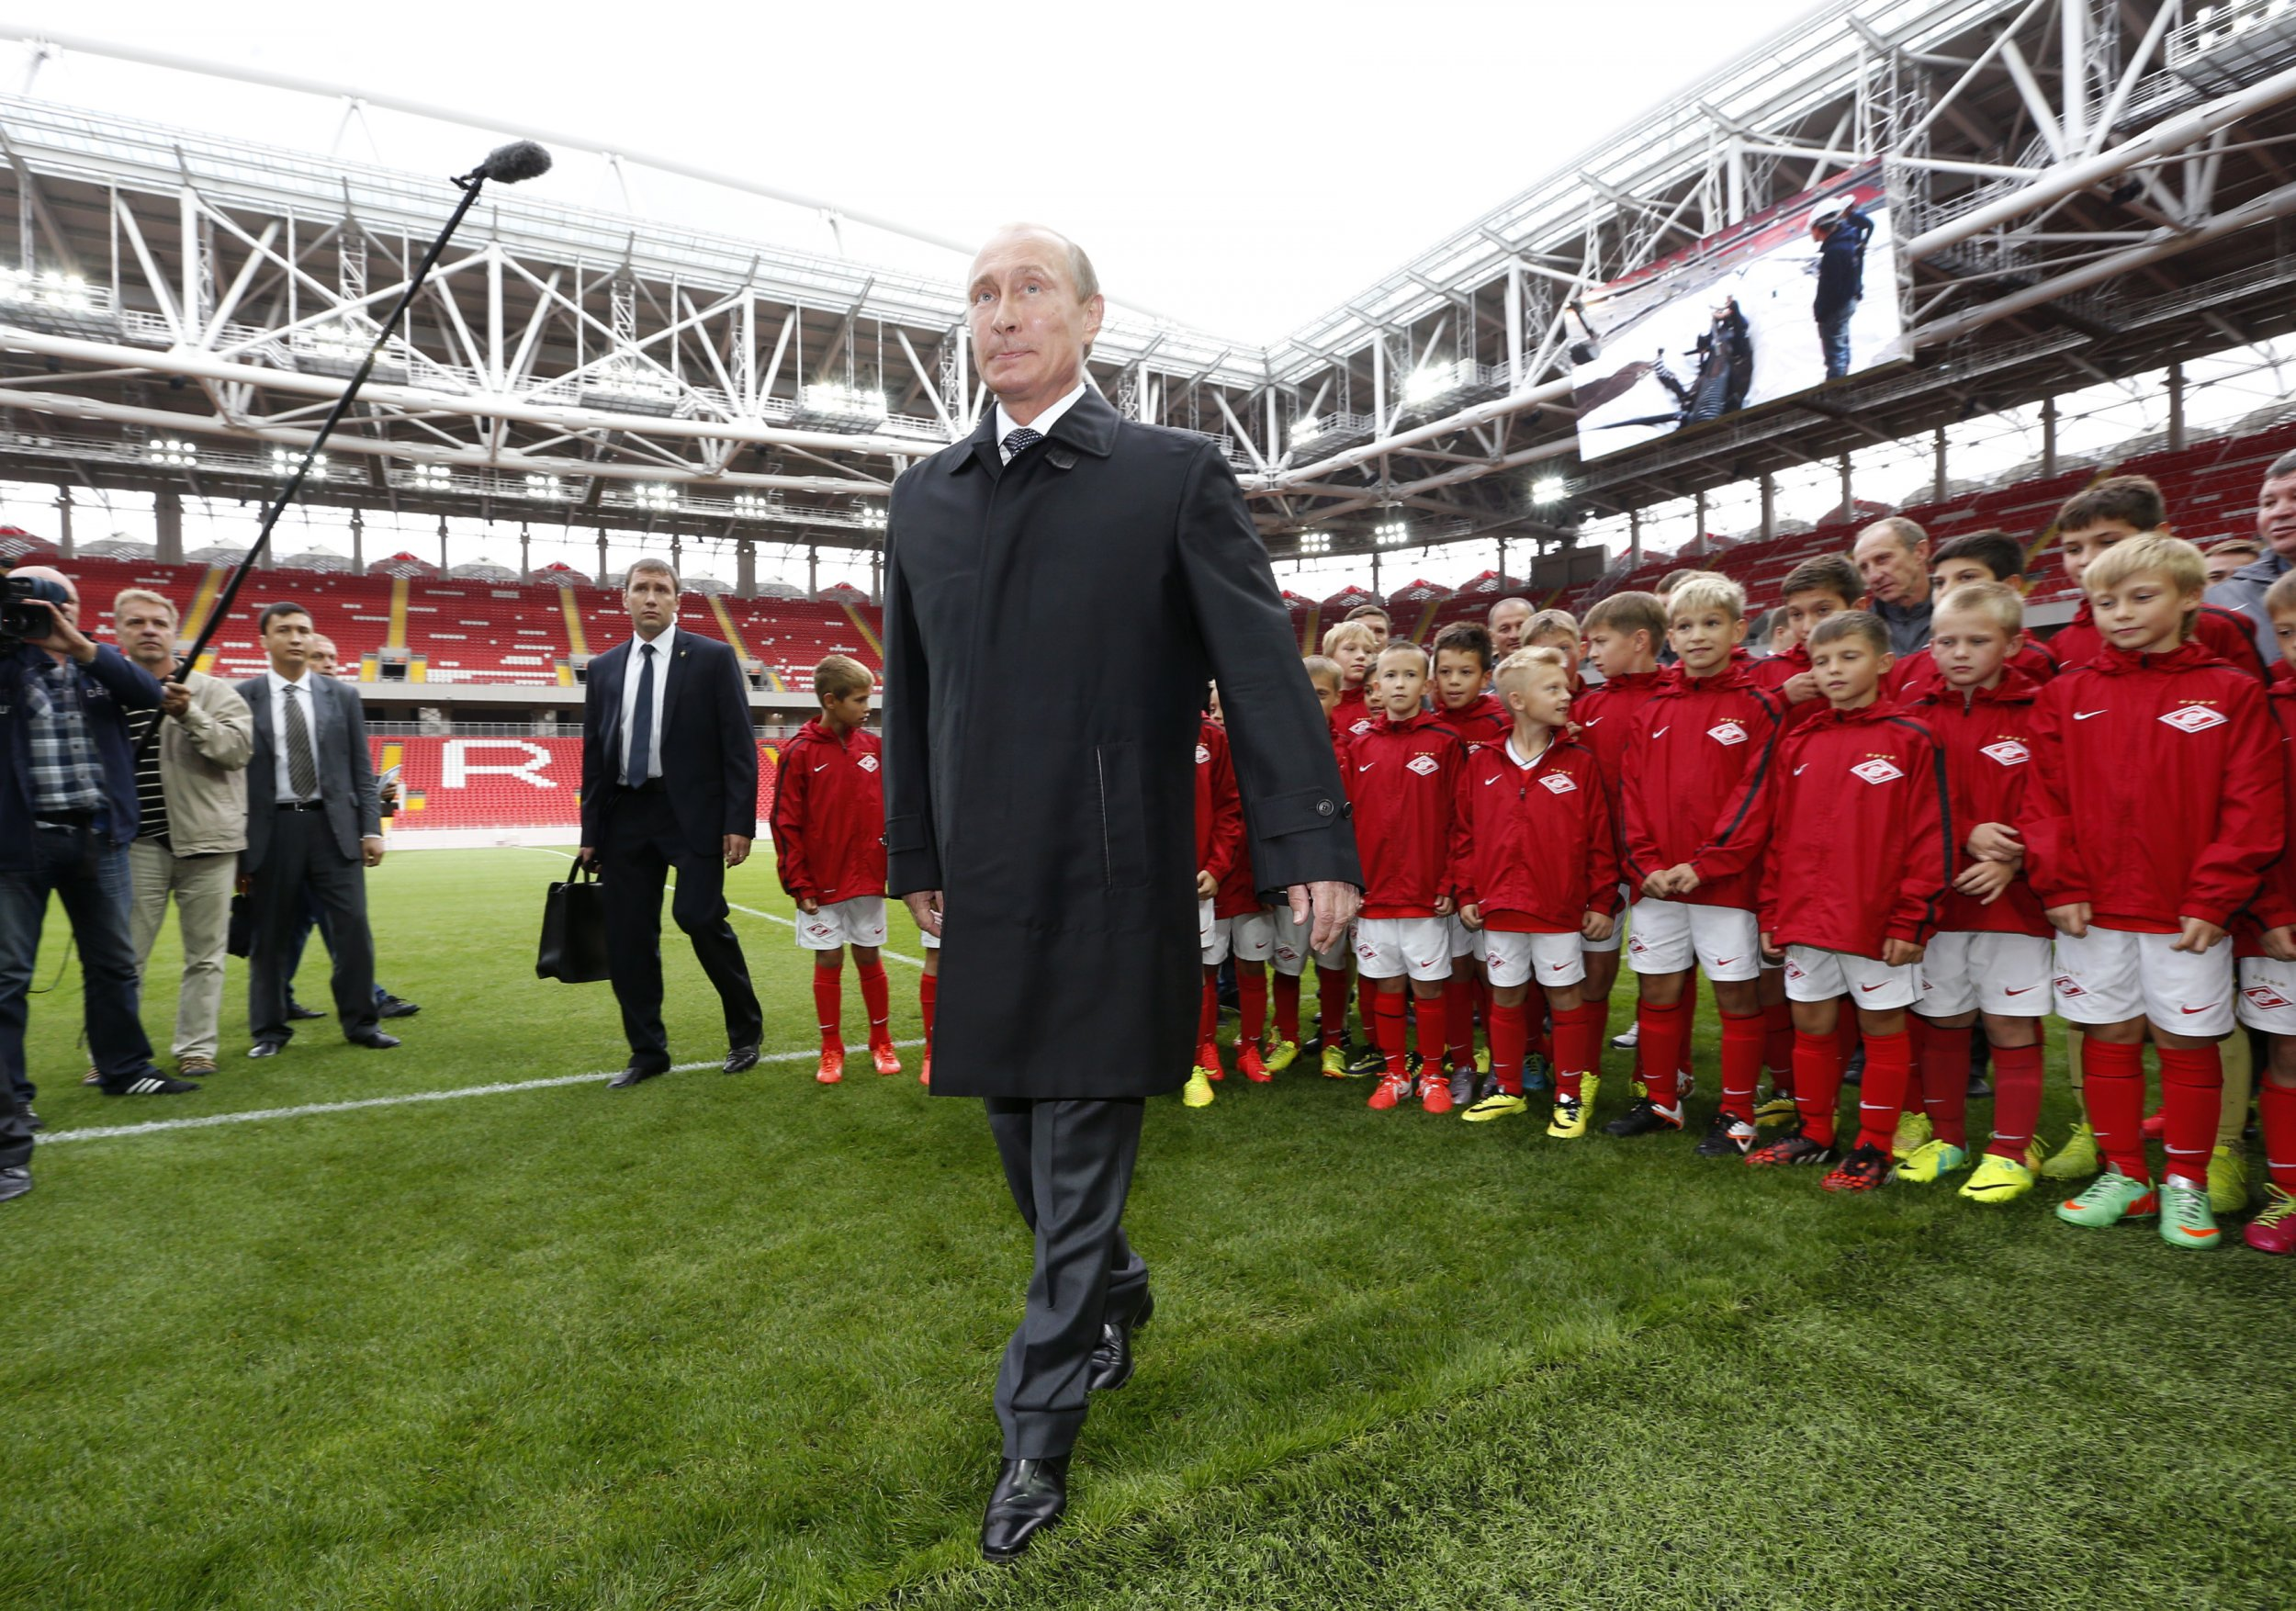 Putin stands in front of young soccer players in new stadium